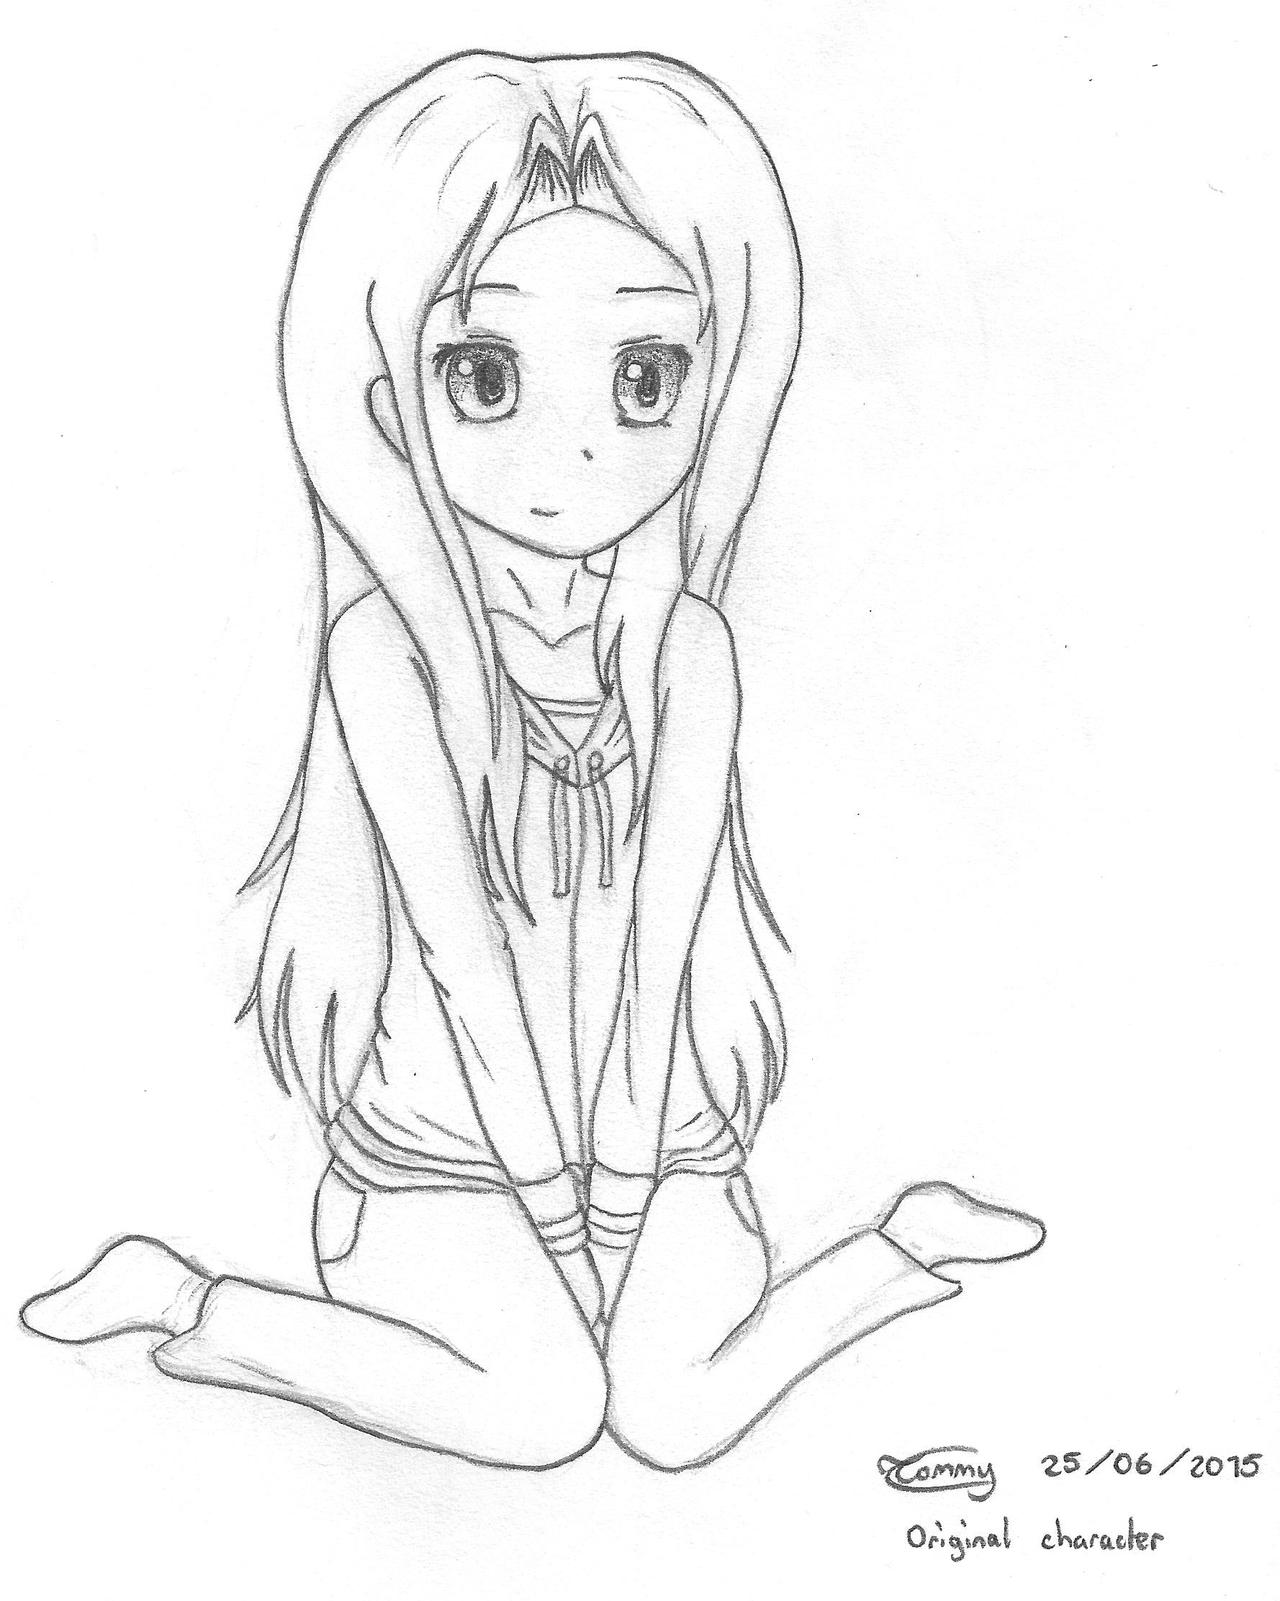 Girl Sitting Down By Tommychasseur On DeviantArt